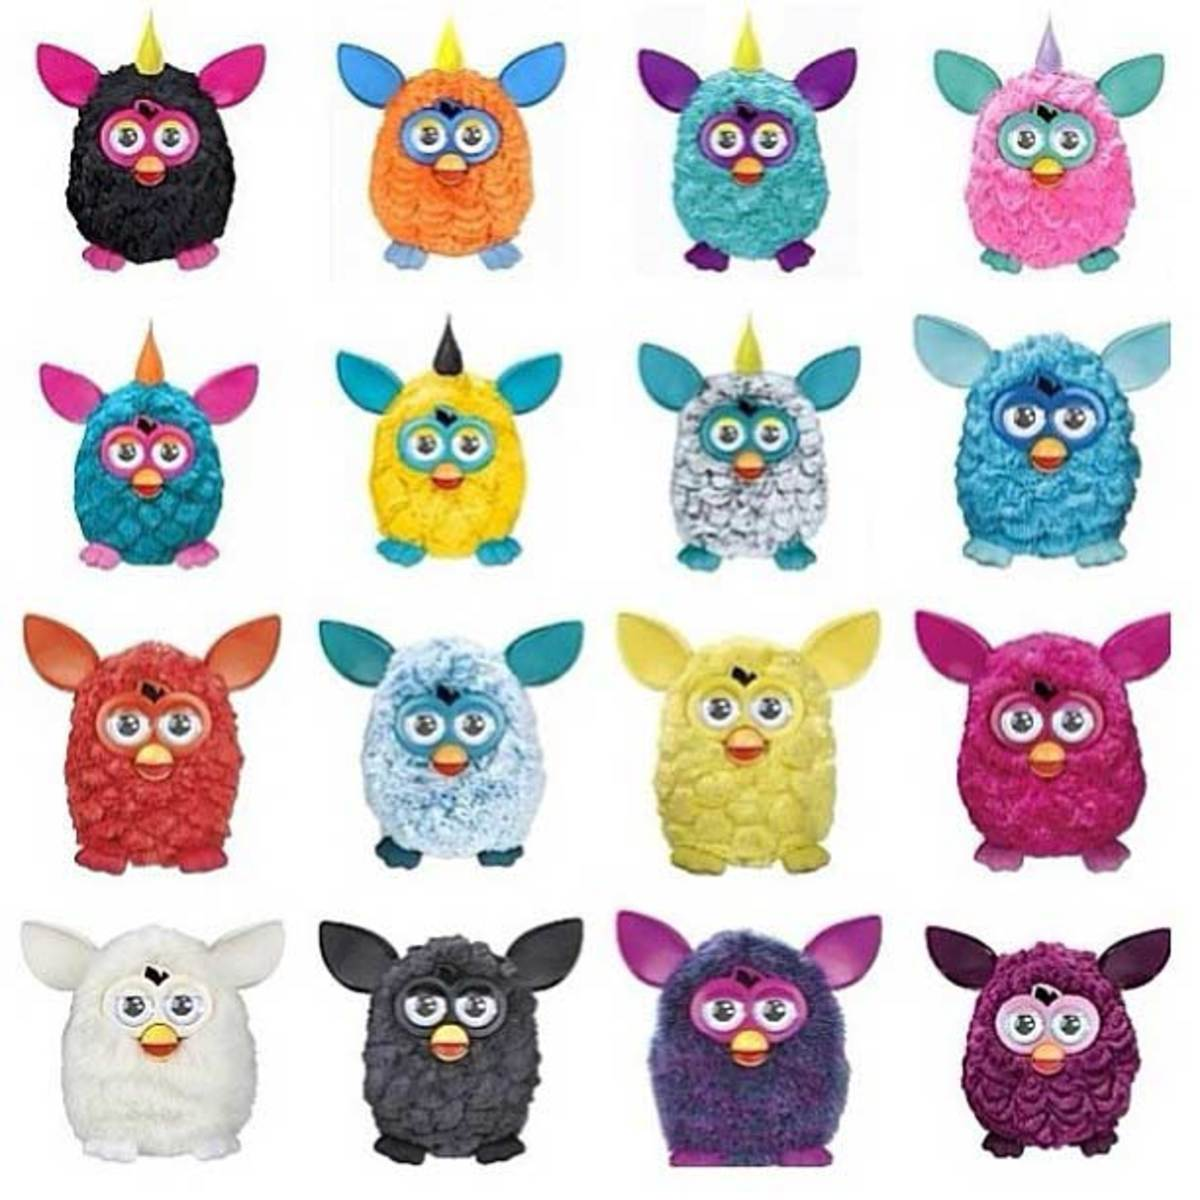 In 2013, Furby Boom creatures were favorite Christmas gifts.